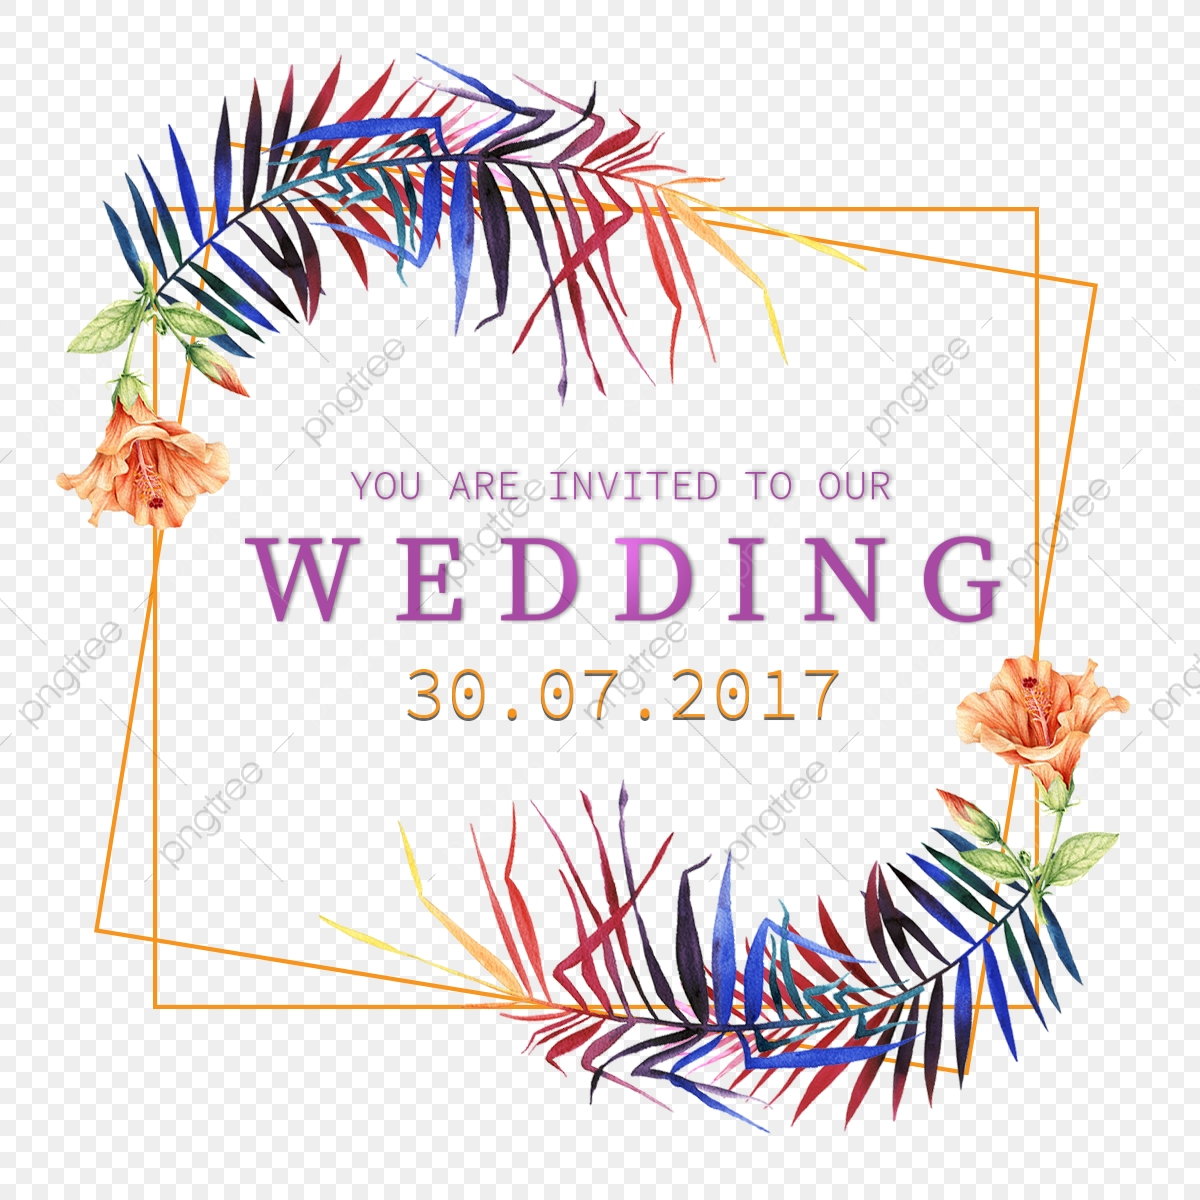 Watercolor Flowers Wedding Invitation Floral Frame Template